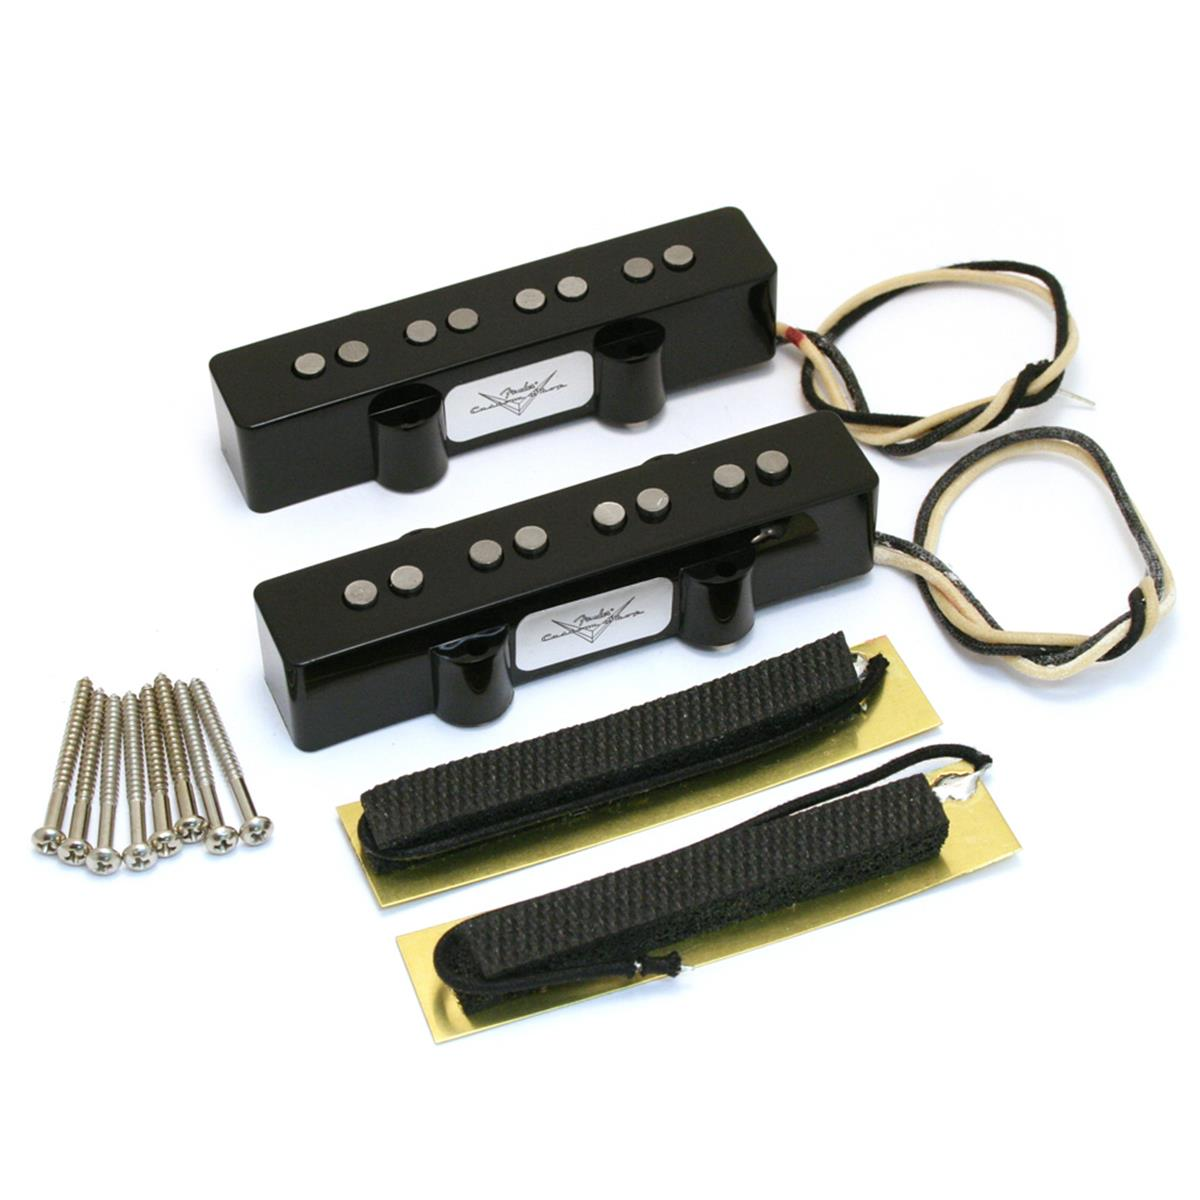 FENDER CUSTOM SHOP 60 JAZZ BASS PICKUP SET